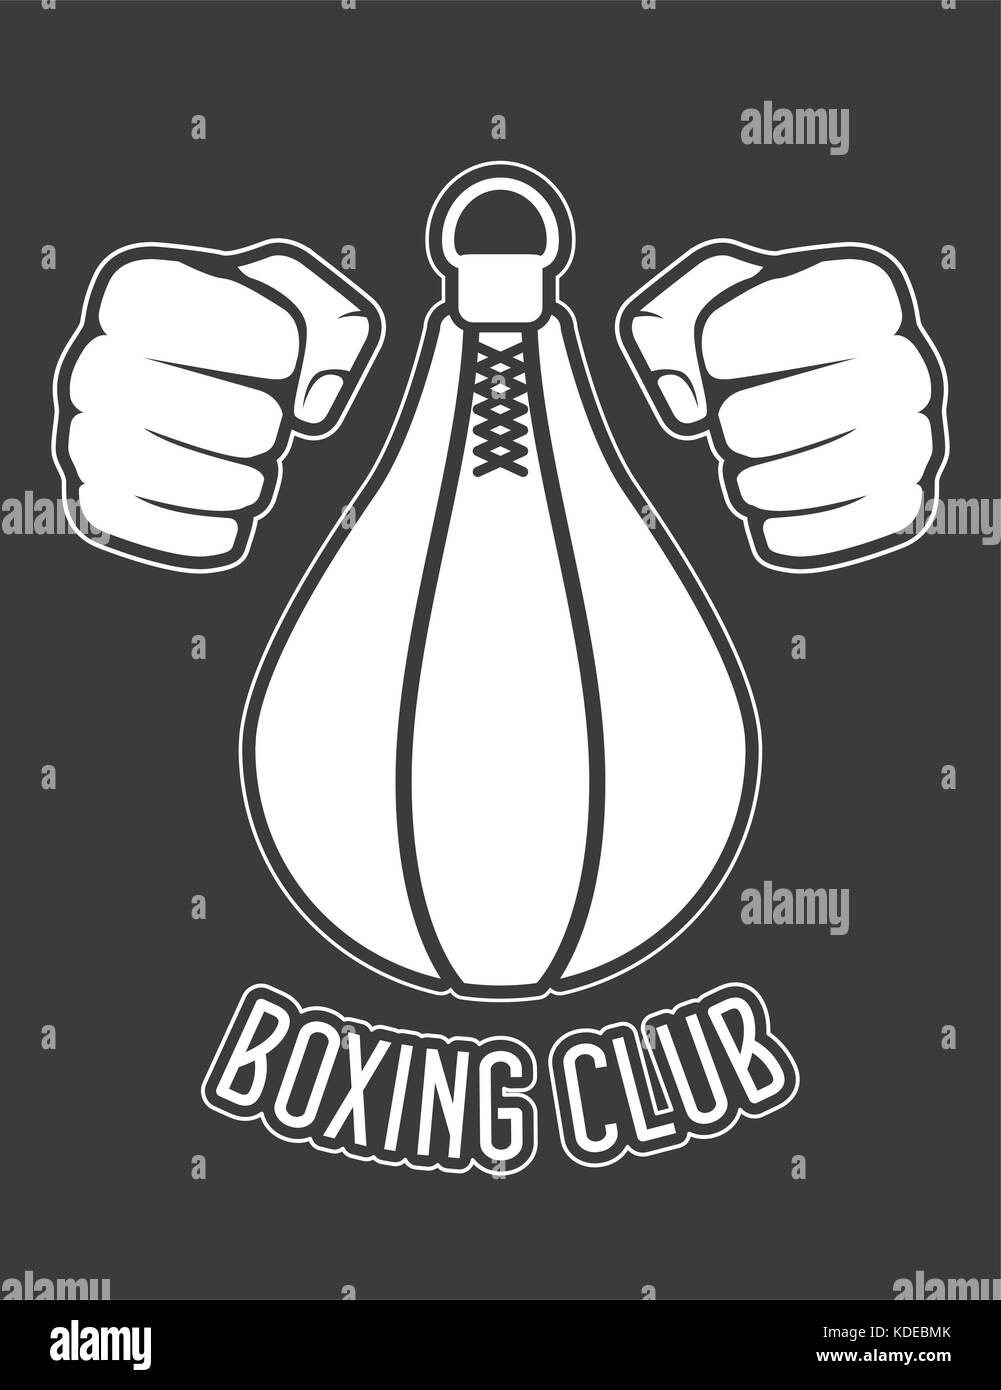 Boxing club emblem - fists and punching bag - Stock Vector